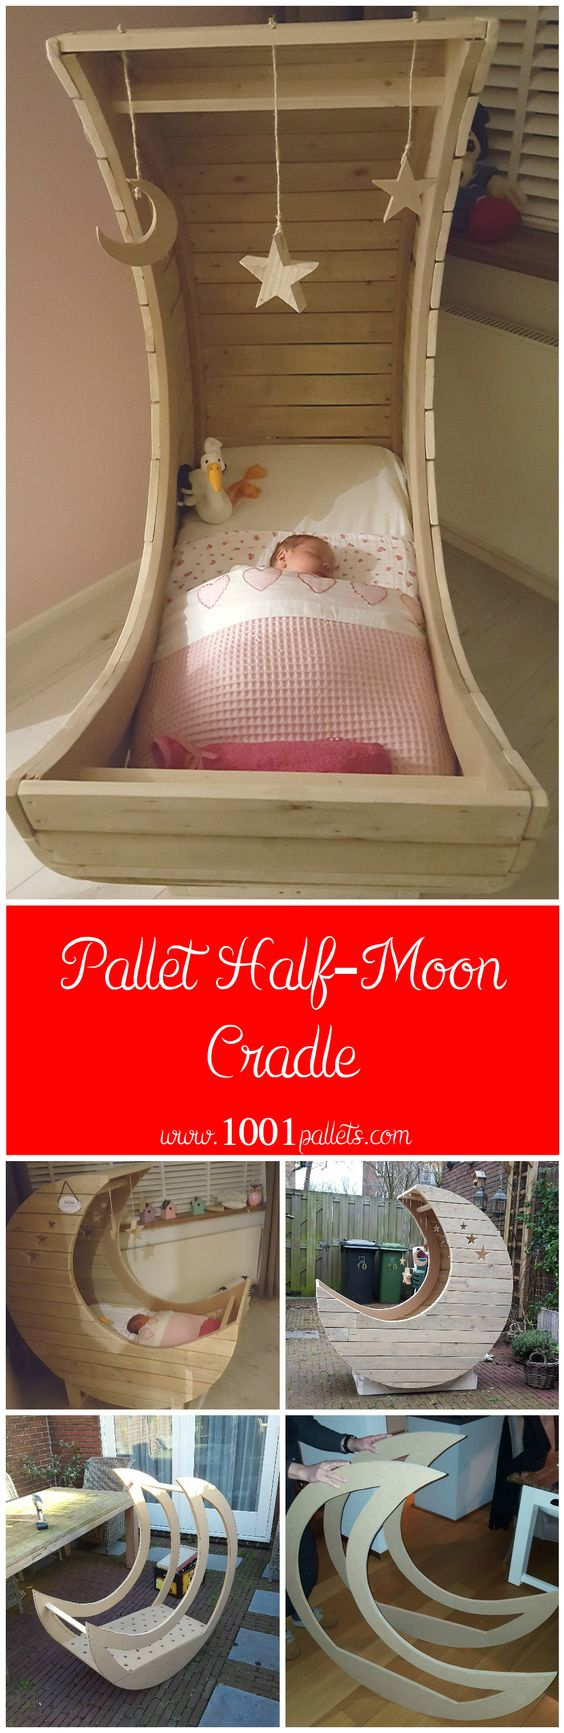 I made this half-moon cradle from used pallets. I have all the pallets I needed from my work, so I …